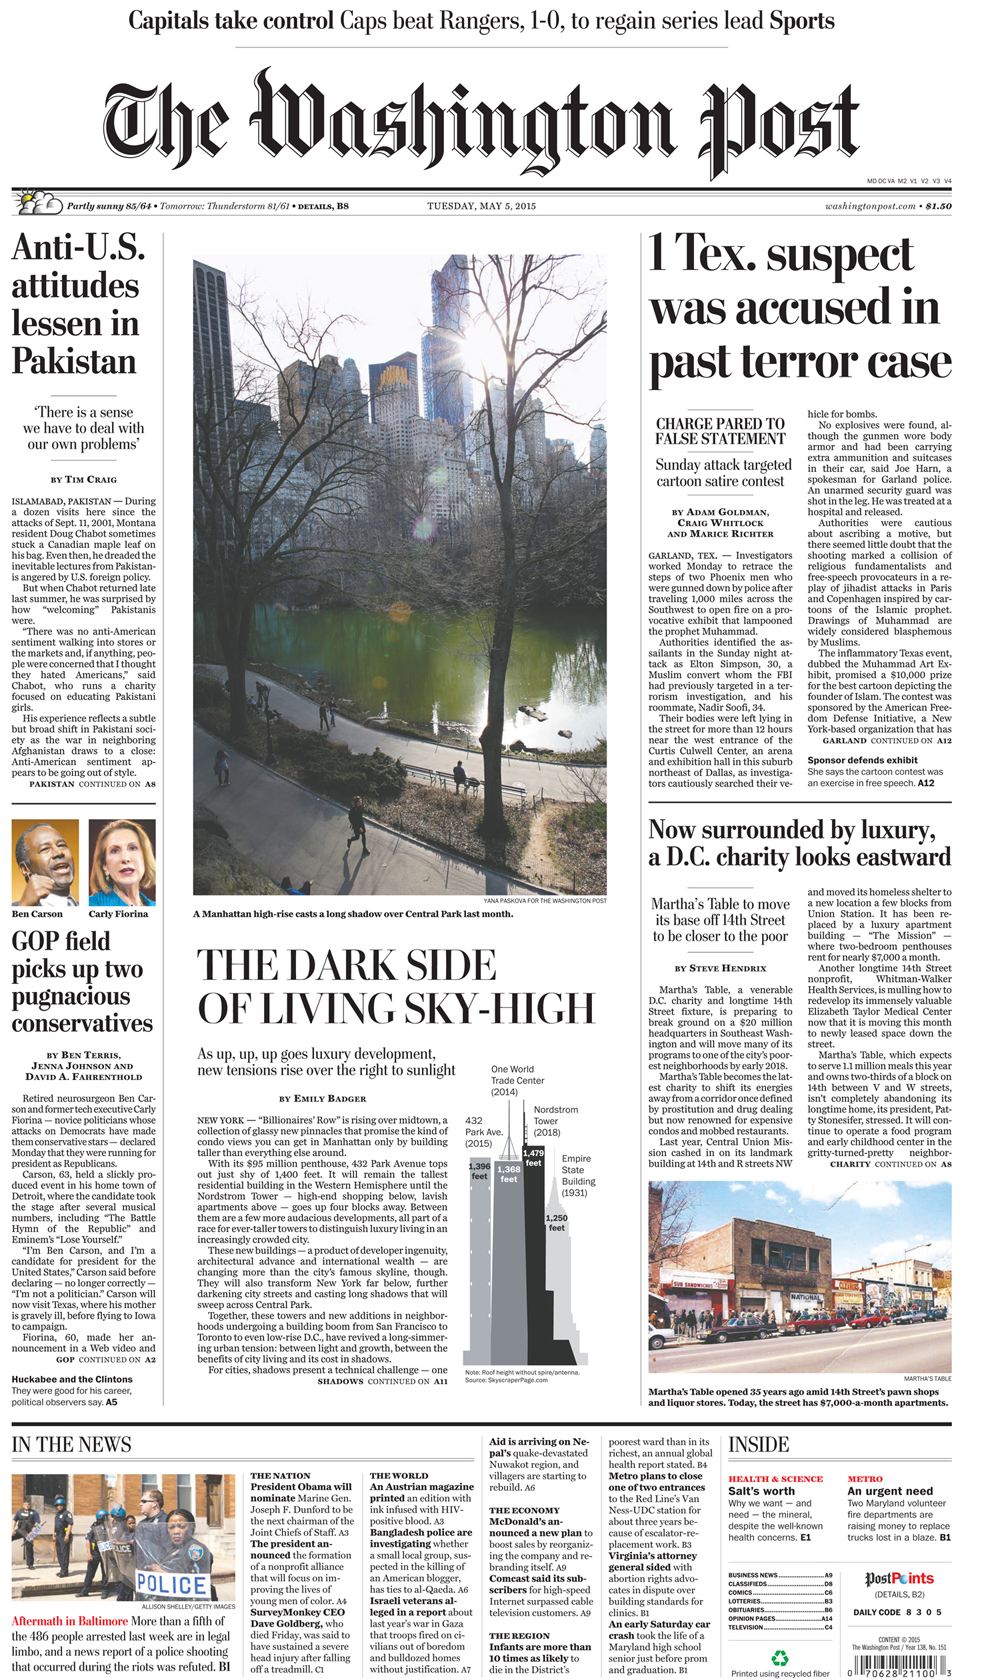 Washington Post front page(top photo above the fold)